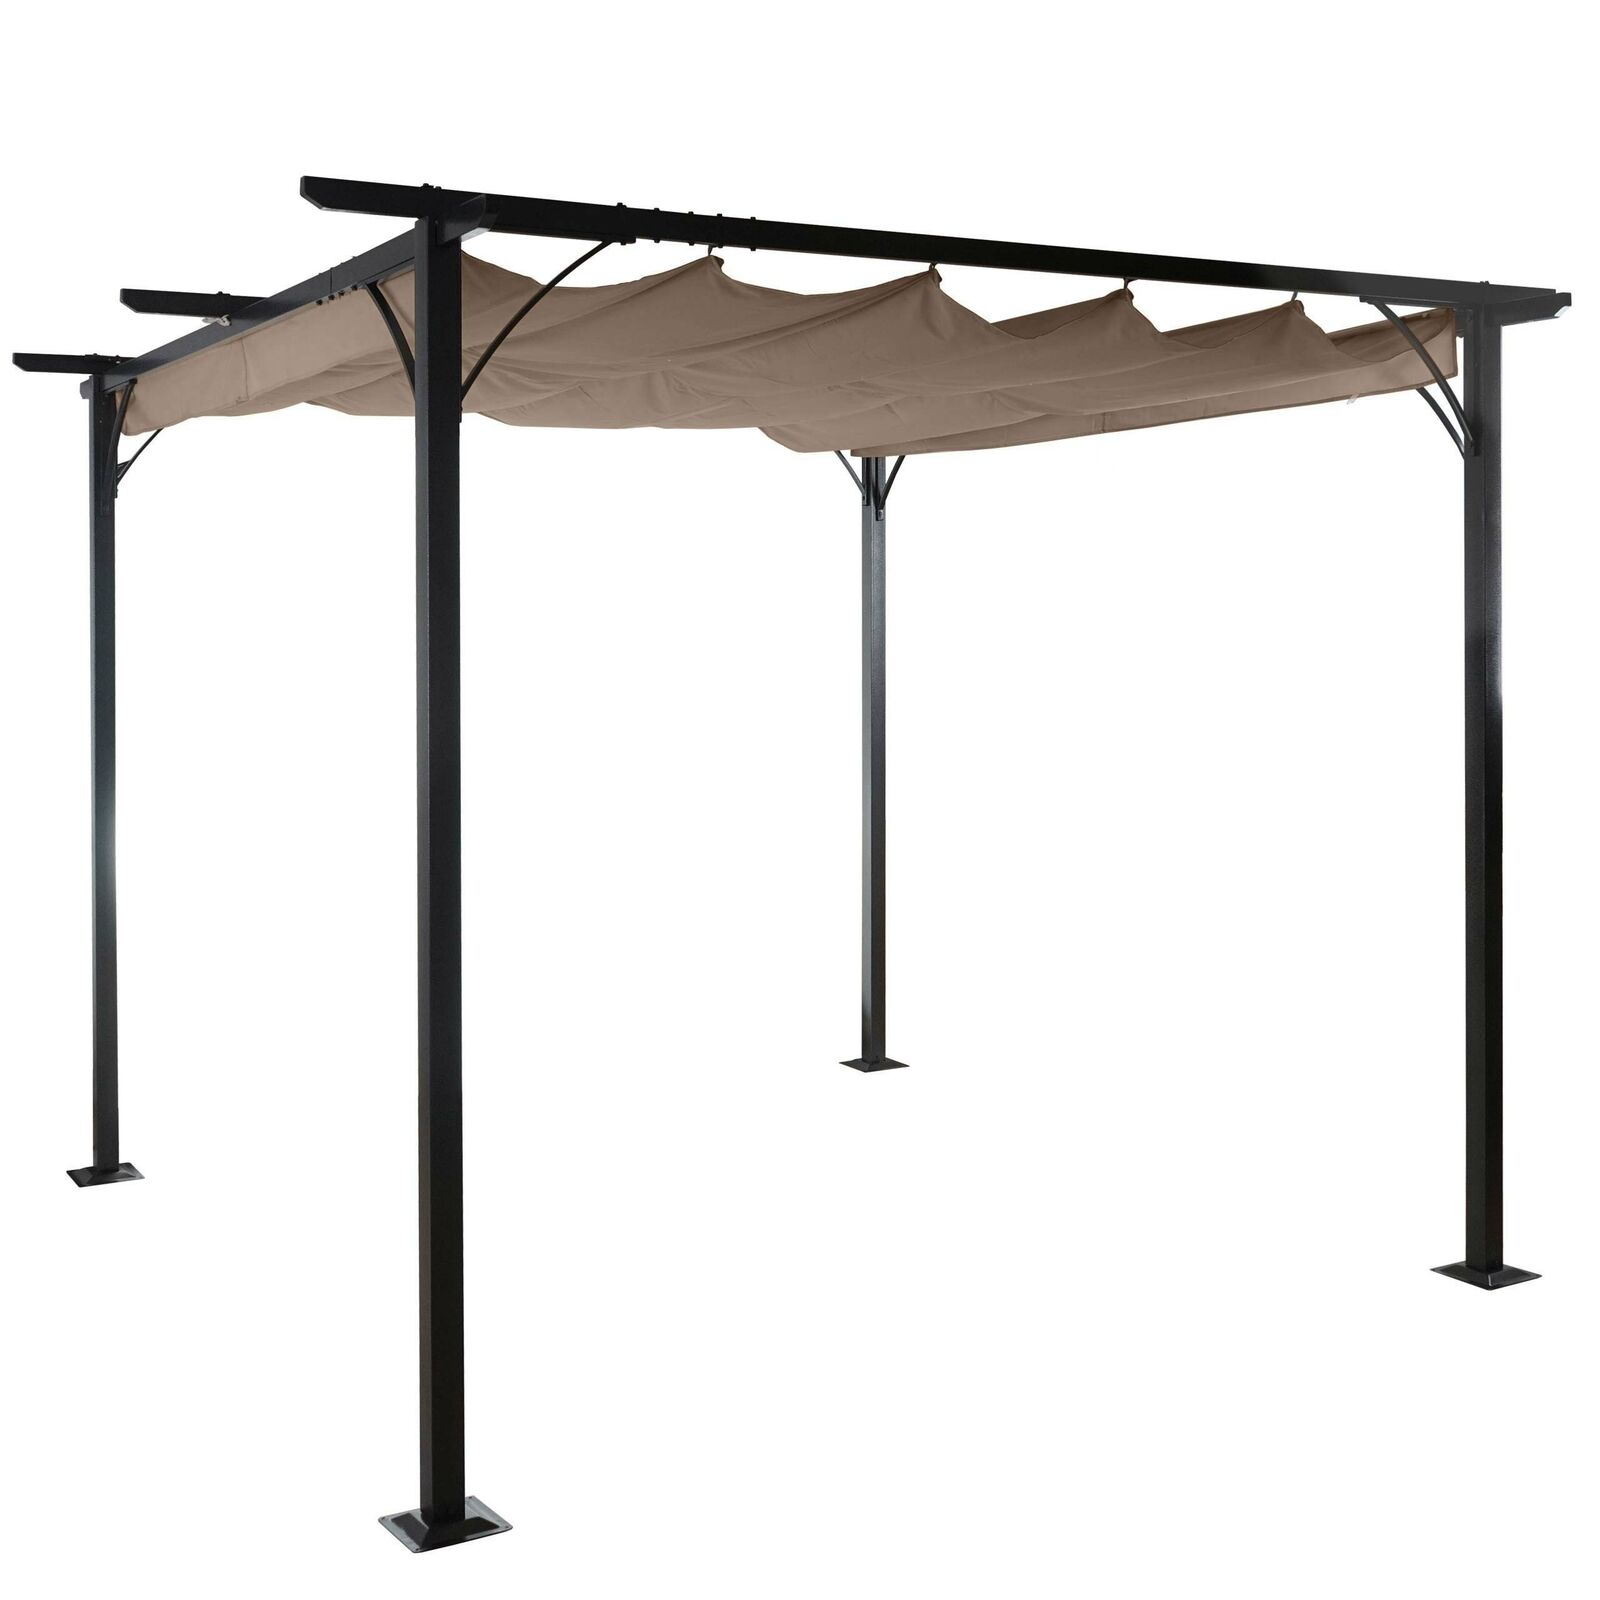 pergola mcw c42 garten pavillon 6cm gestell schiebedach 3 5x3 5m taupe eur 245 99. Black Bedroom Furniture Sets. Home Design Ideas